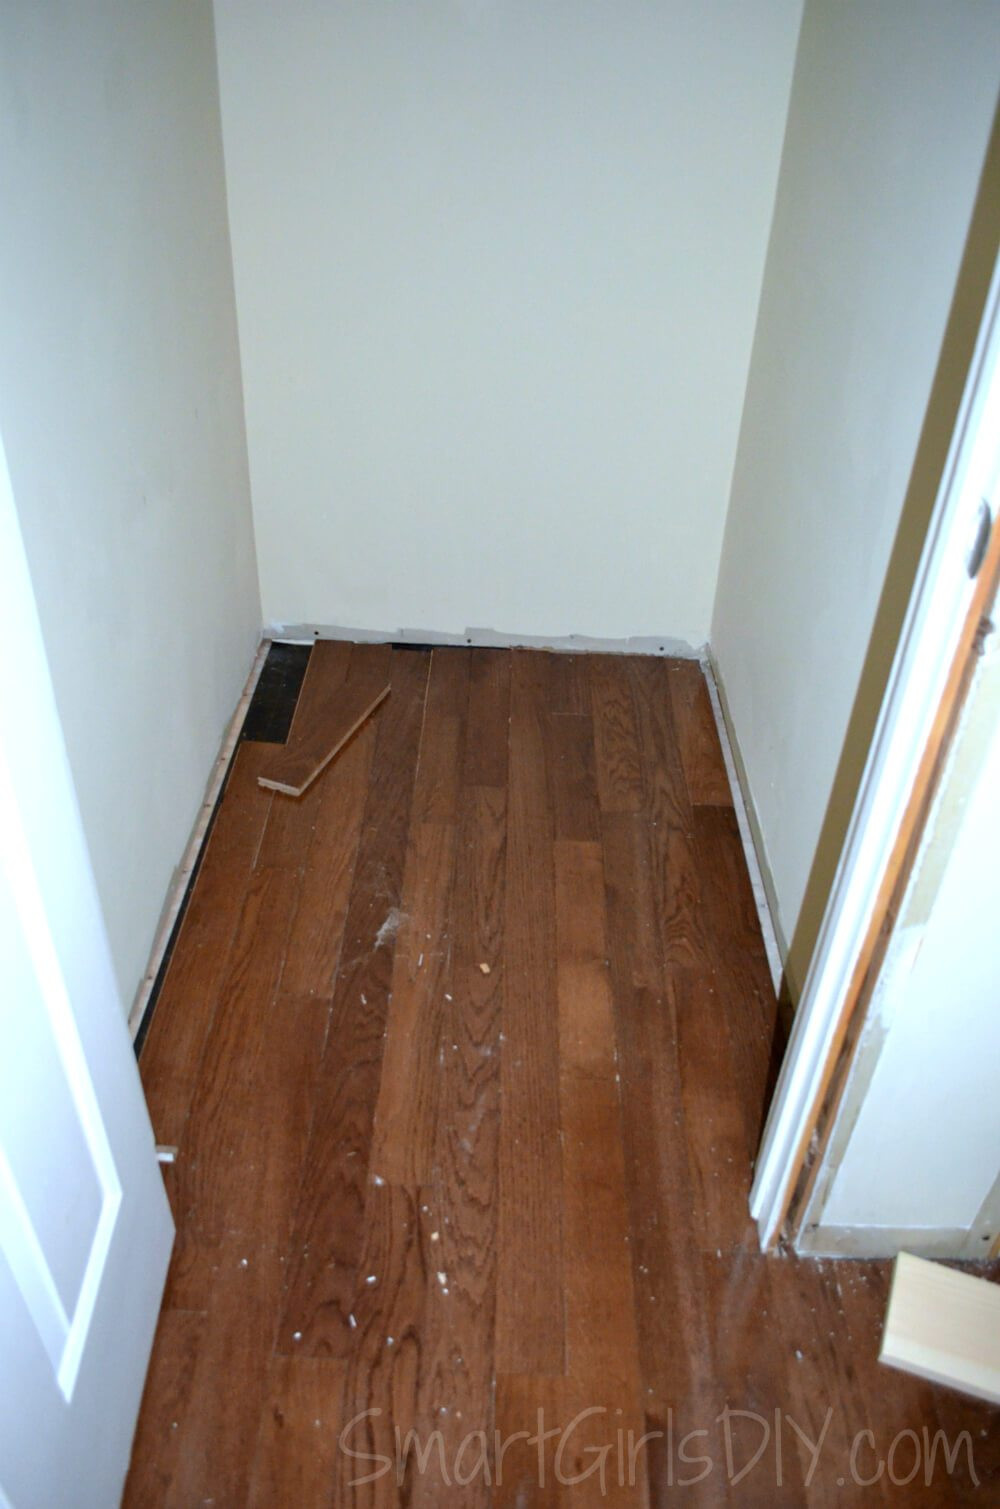 five star hardwood flooring reno of upstairs hallway 1 installing hardwood floors with regard to hardwood extends into closet